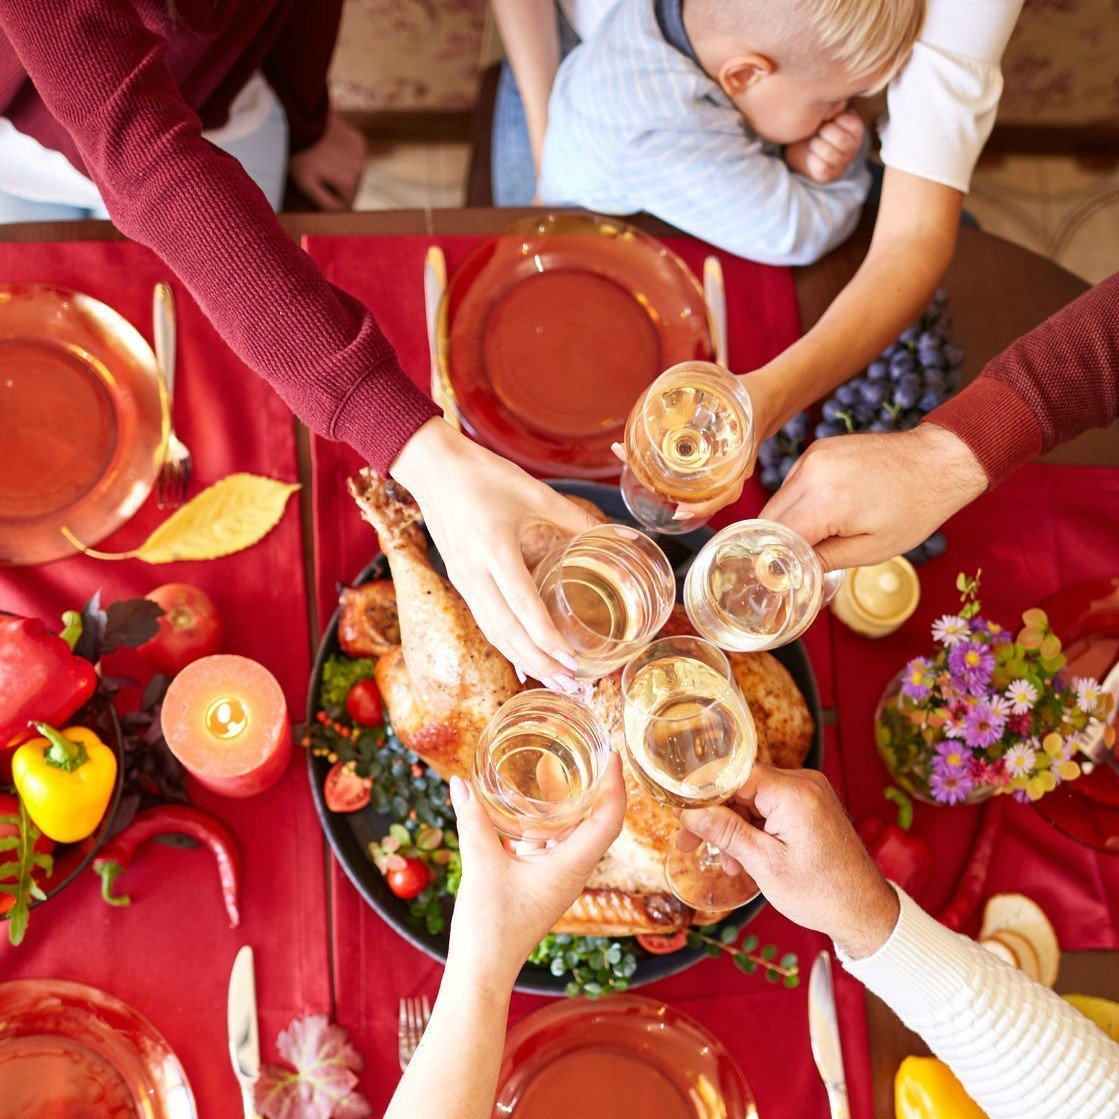 6 Thanksgiving Foods You May Want To Avoid If Breastfeeding